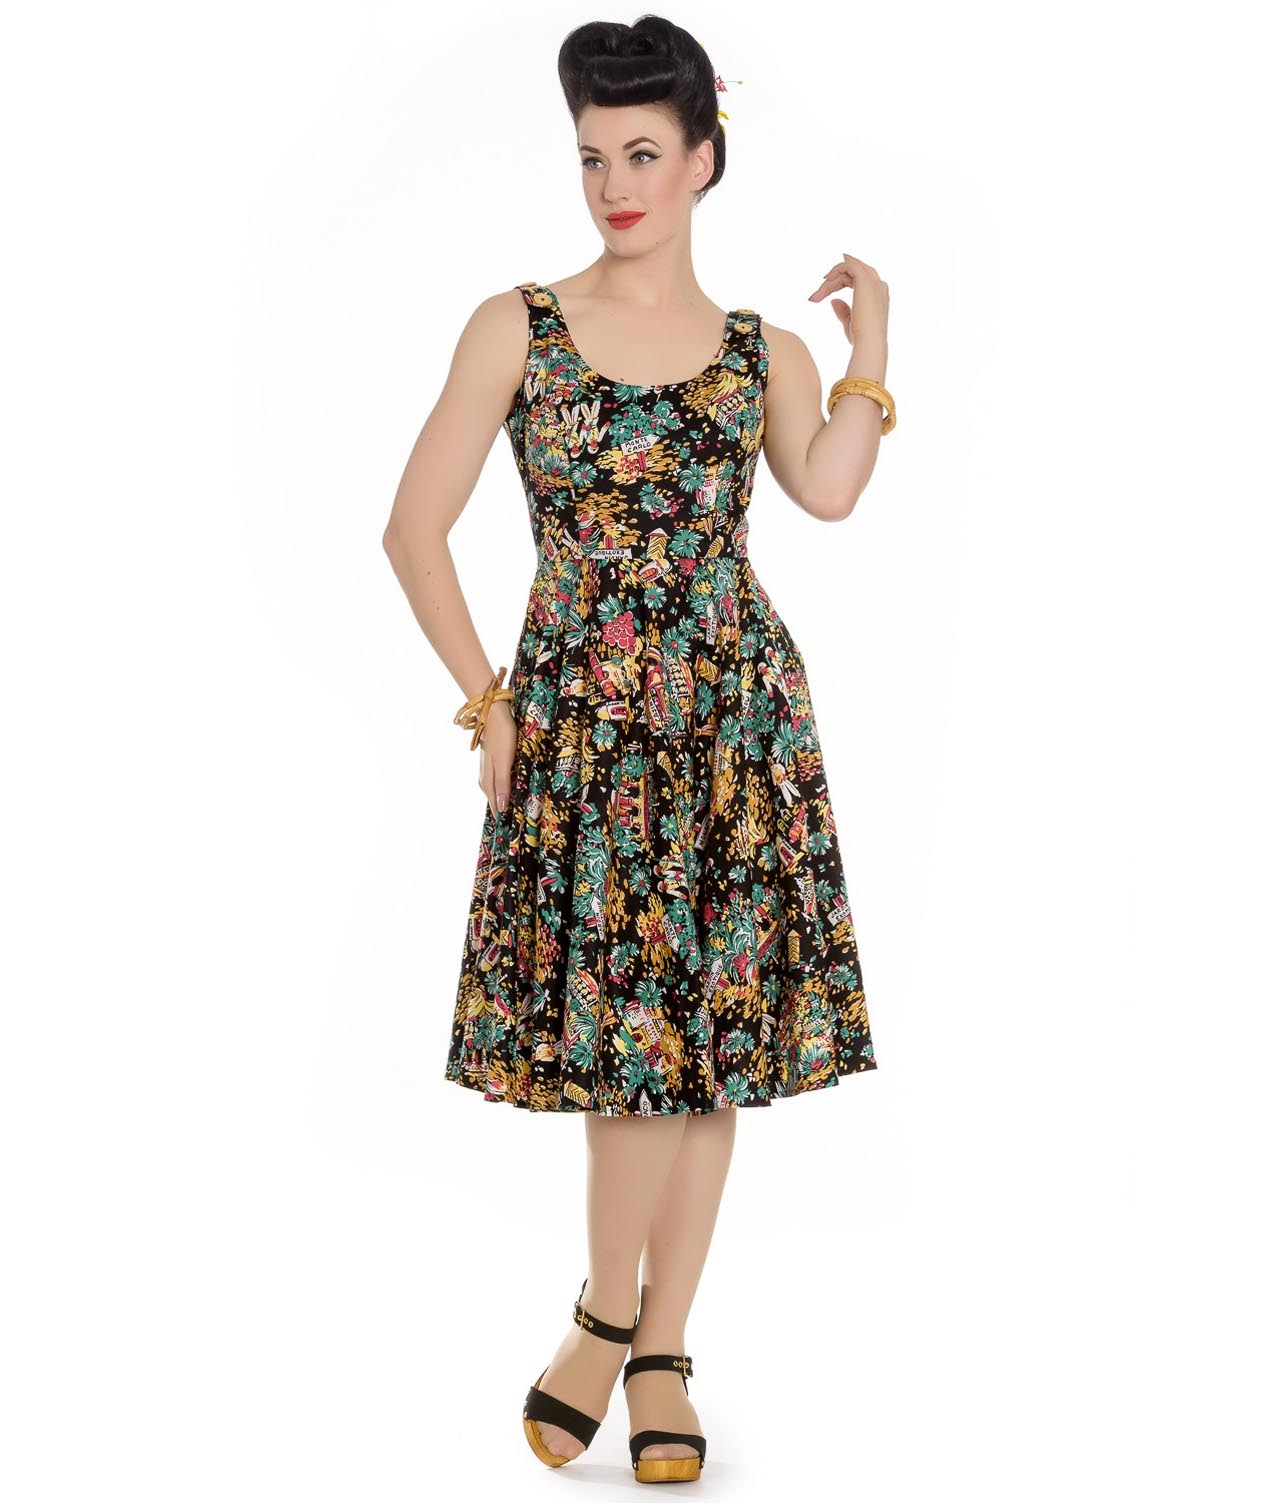 Hell-Bunny-Summer-50s-Black-Dress-MONTE-CARLO-Tropical-Holiday-All-Sizes thumbnail 31